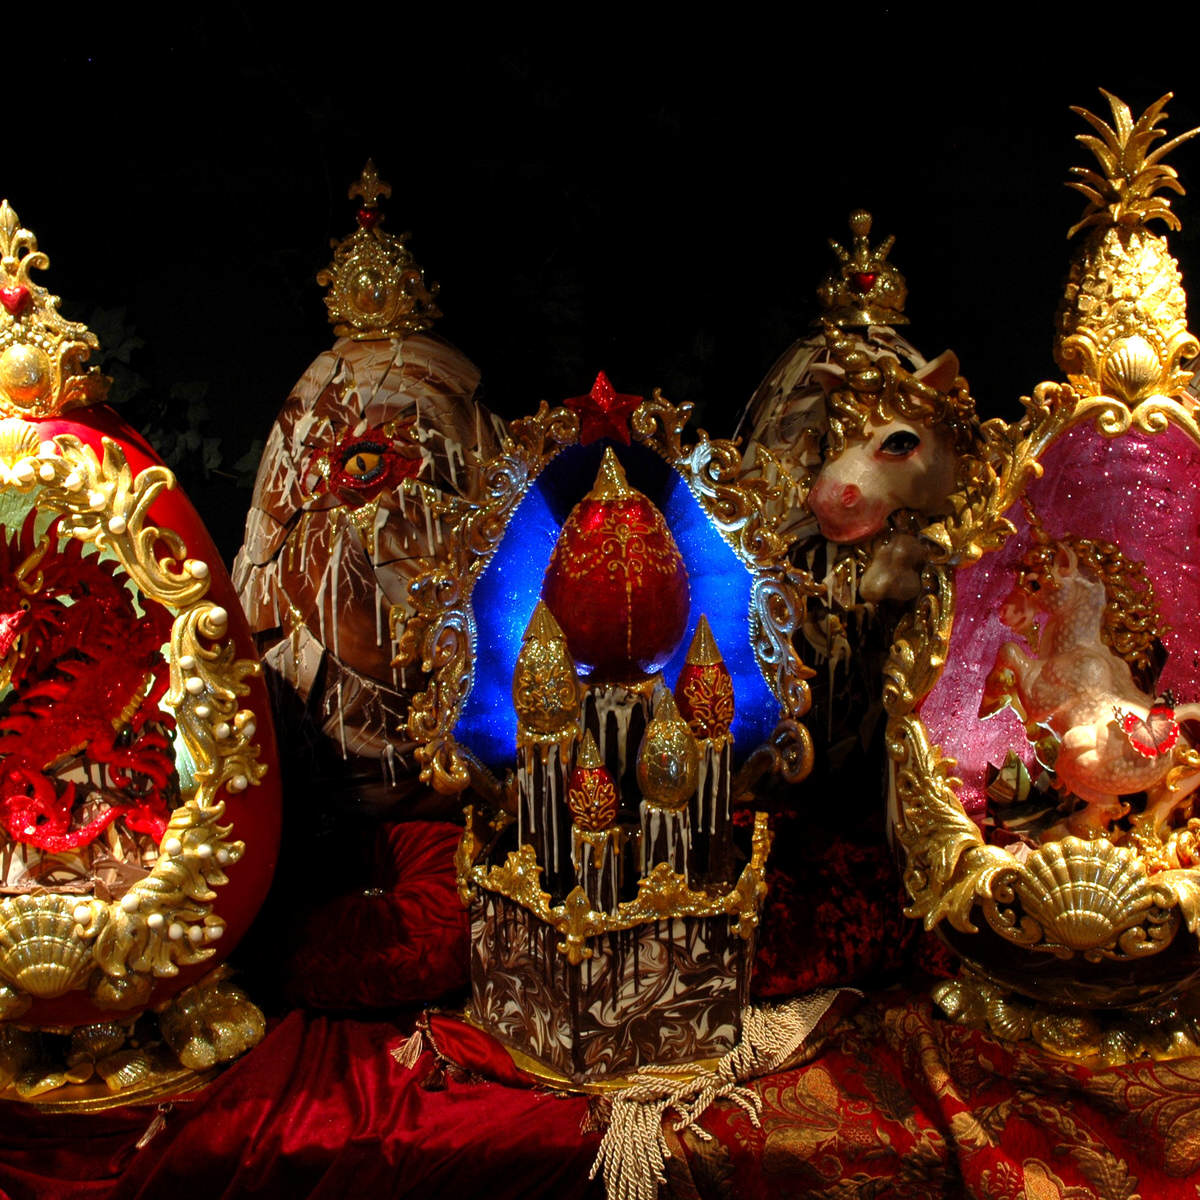 The Worlds Most Expensive Easter Eggs Are Absolutely Ridiculous SWNS FABERGE EASTER 08